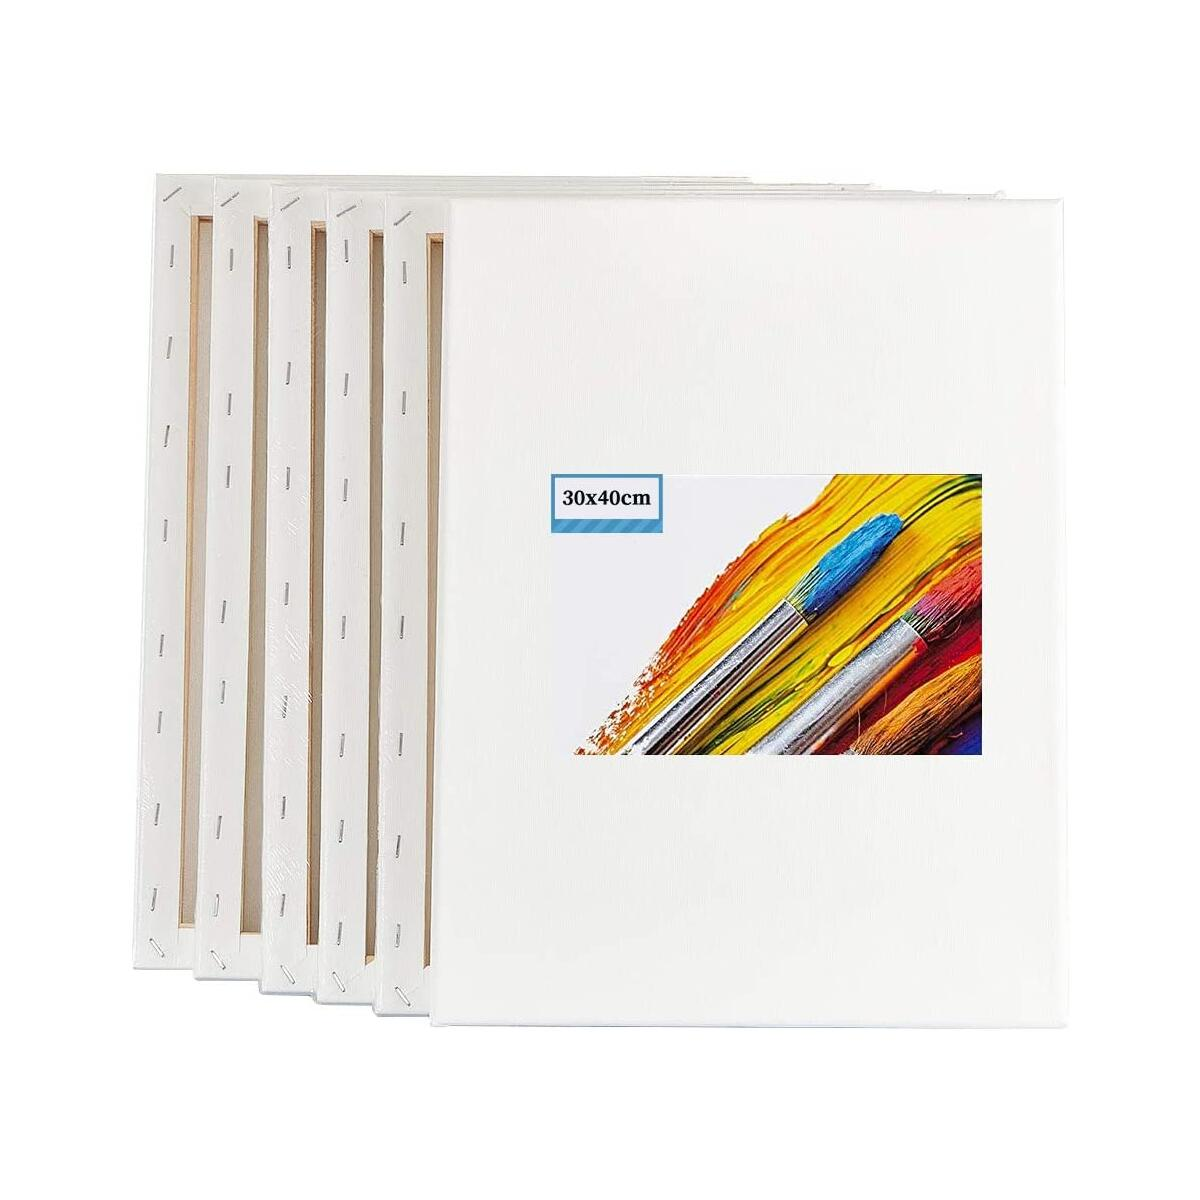 6 Pack Blank Stretched Canvas for Painting - 100% Cotton Art Canvases Frame for Painting, Stretched Canvas for Acrylic Painting with Acid Free Triple Primed Gesso (12